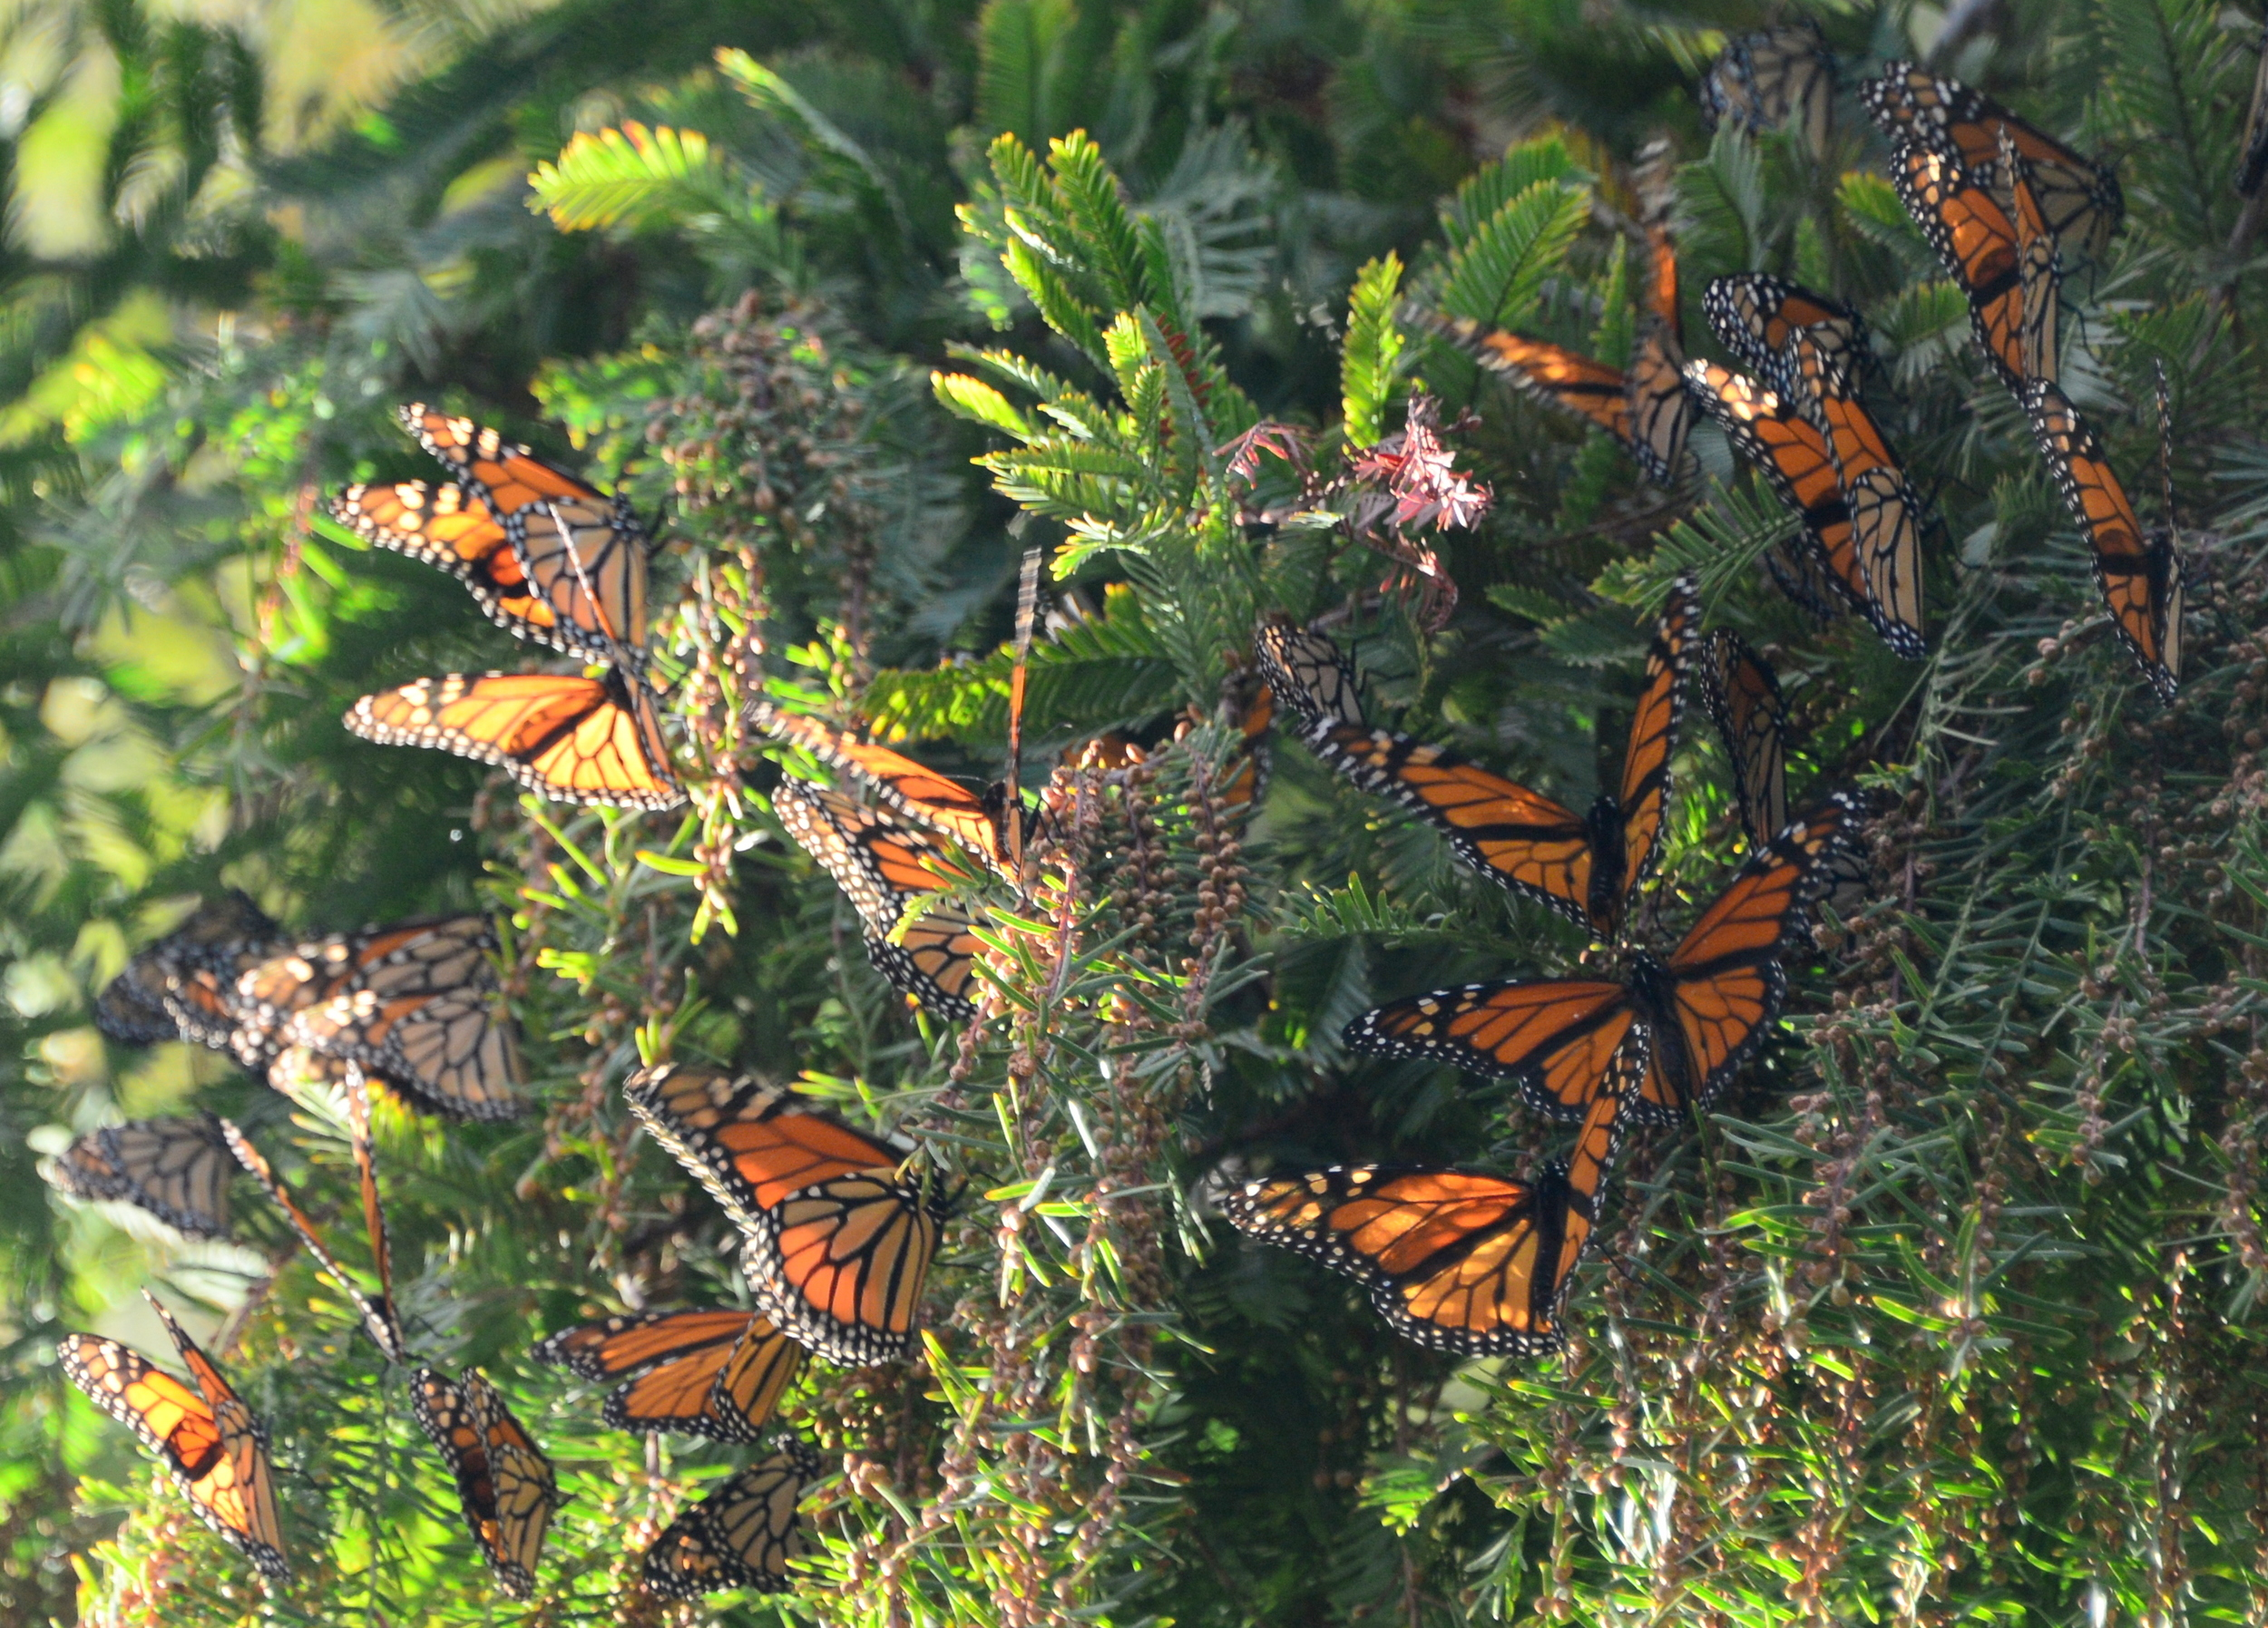 Monarchs clustering on Dawn Redwood branches in the Lake Merritt Gardens